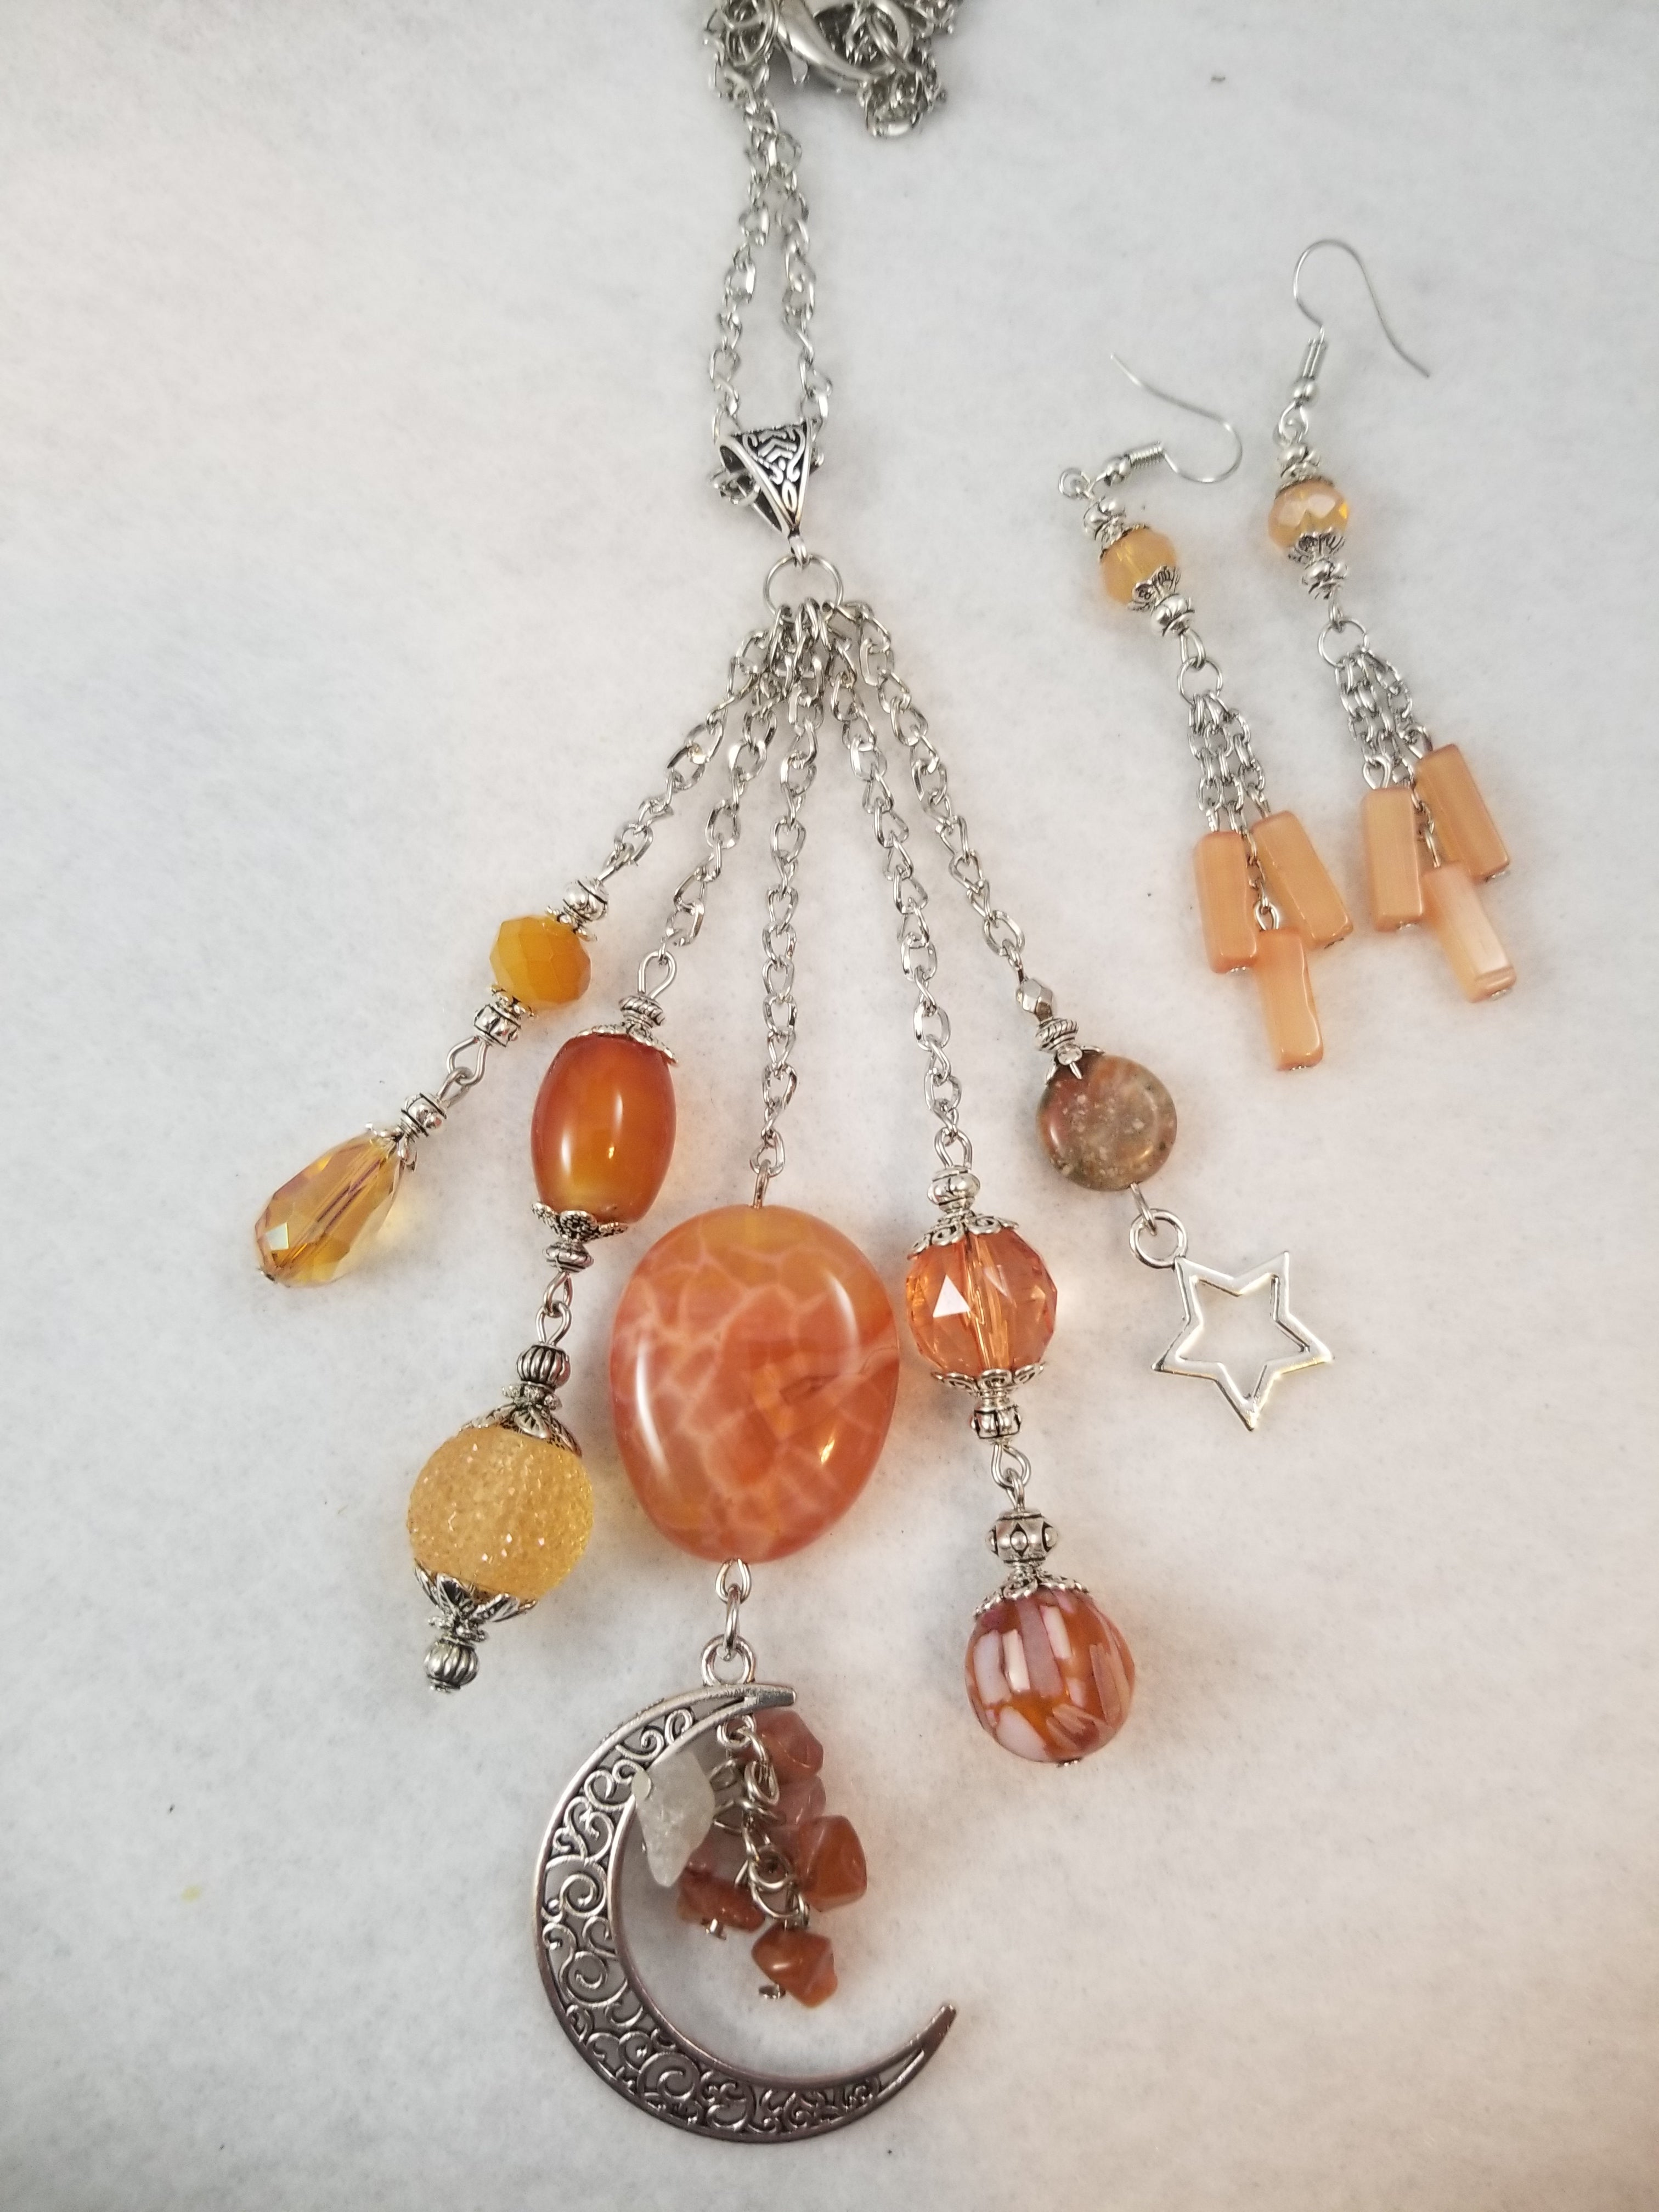 Autumn Moon Necklace with Earrings